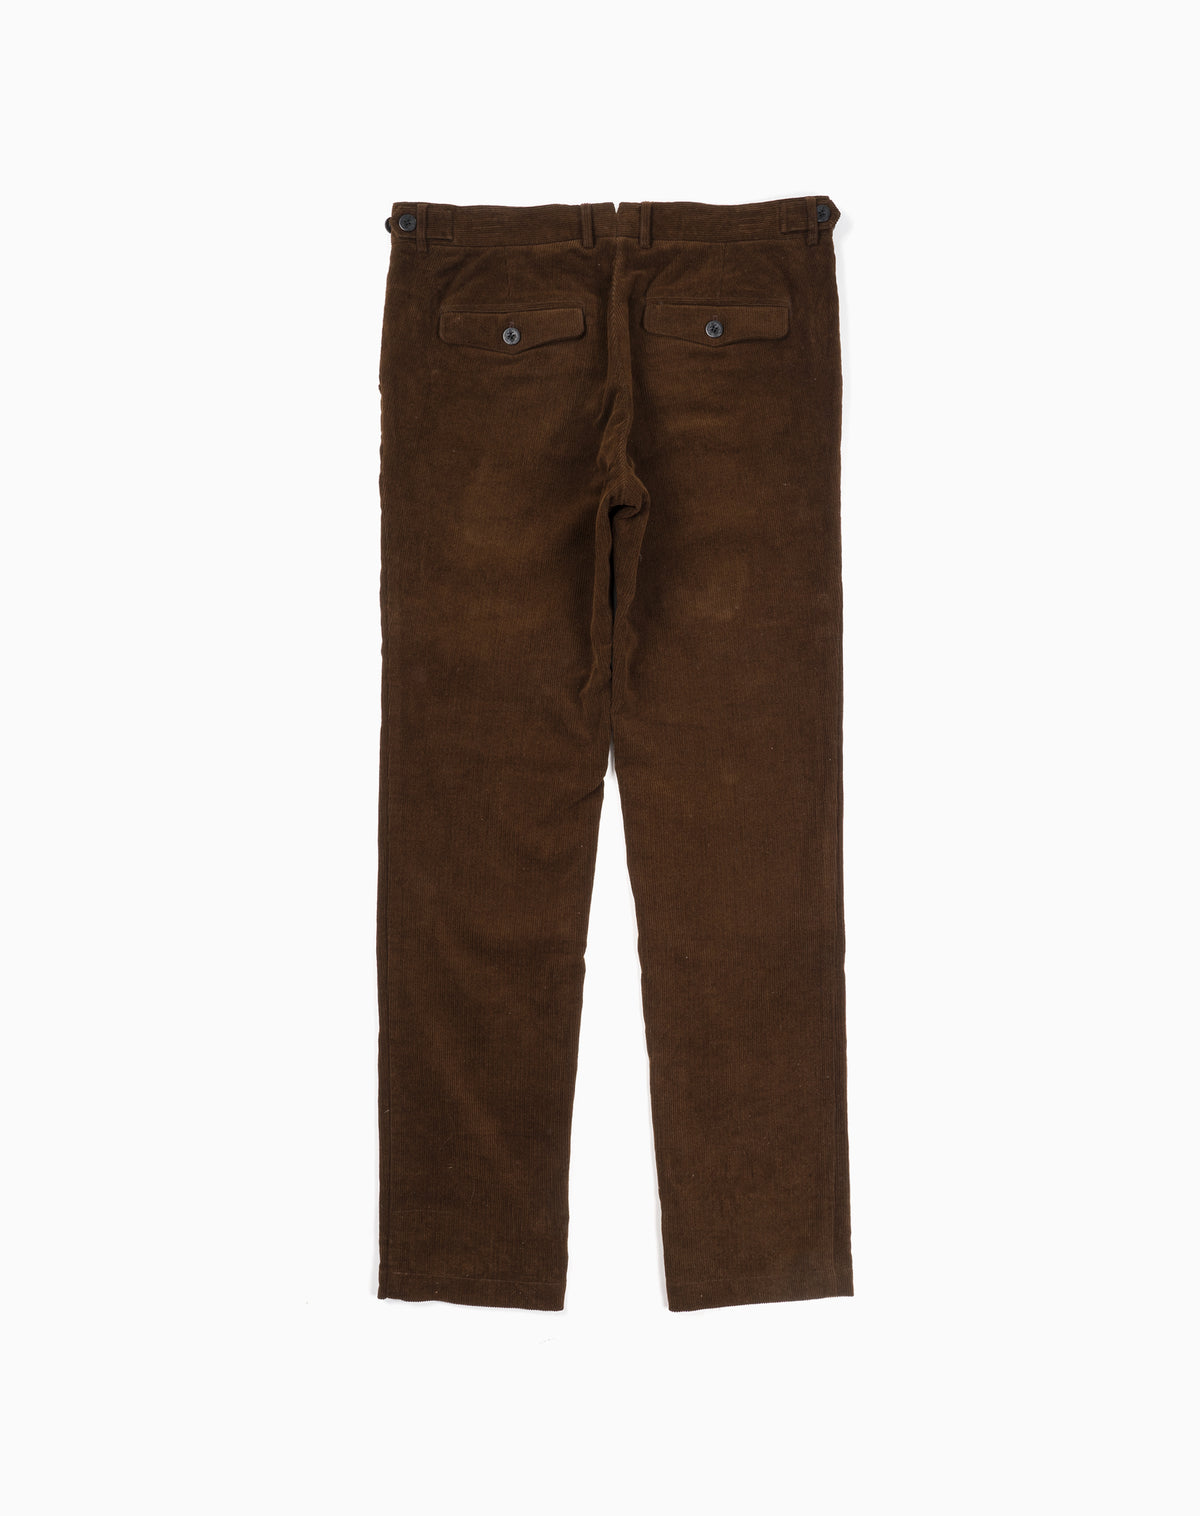 Gates Corduroy Pant in Bark